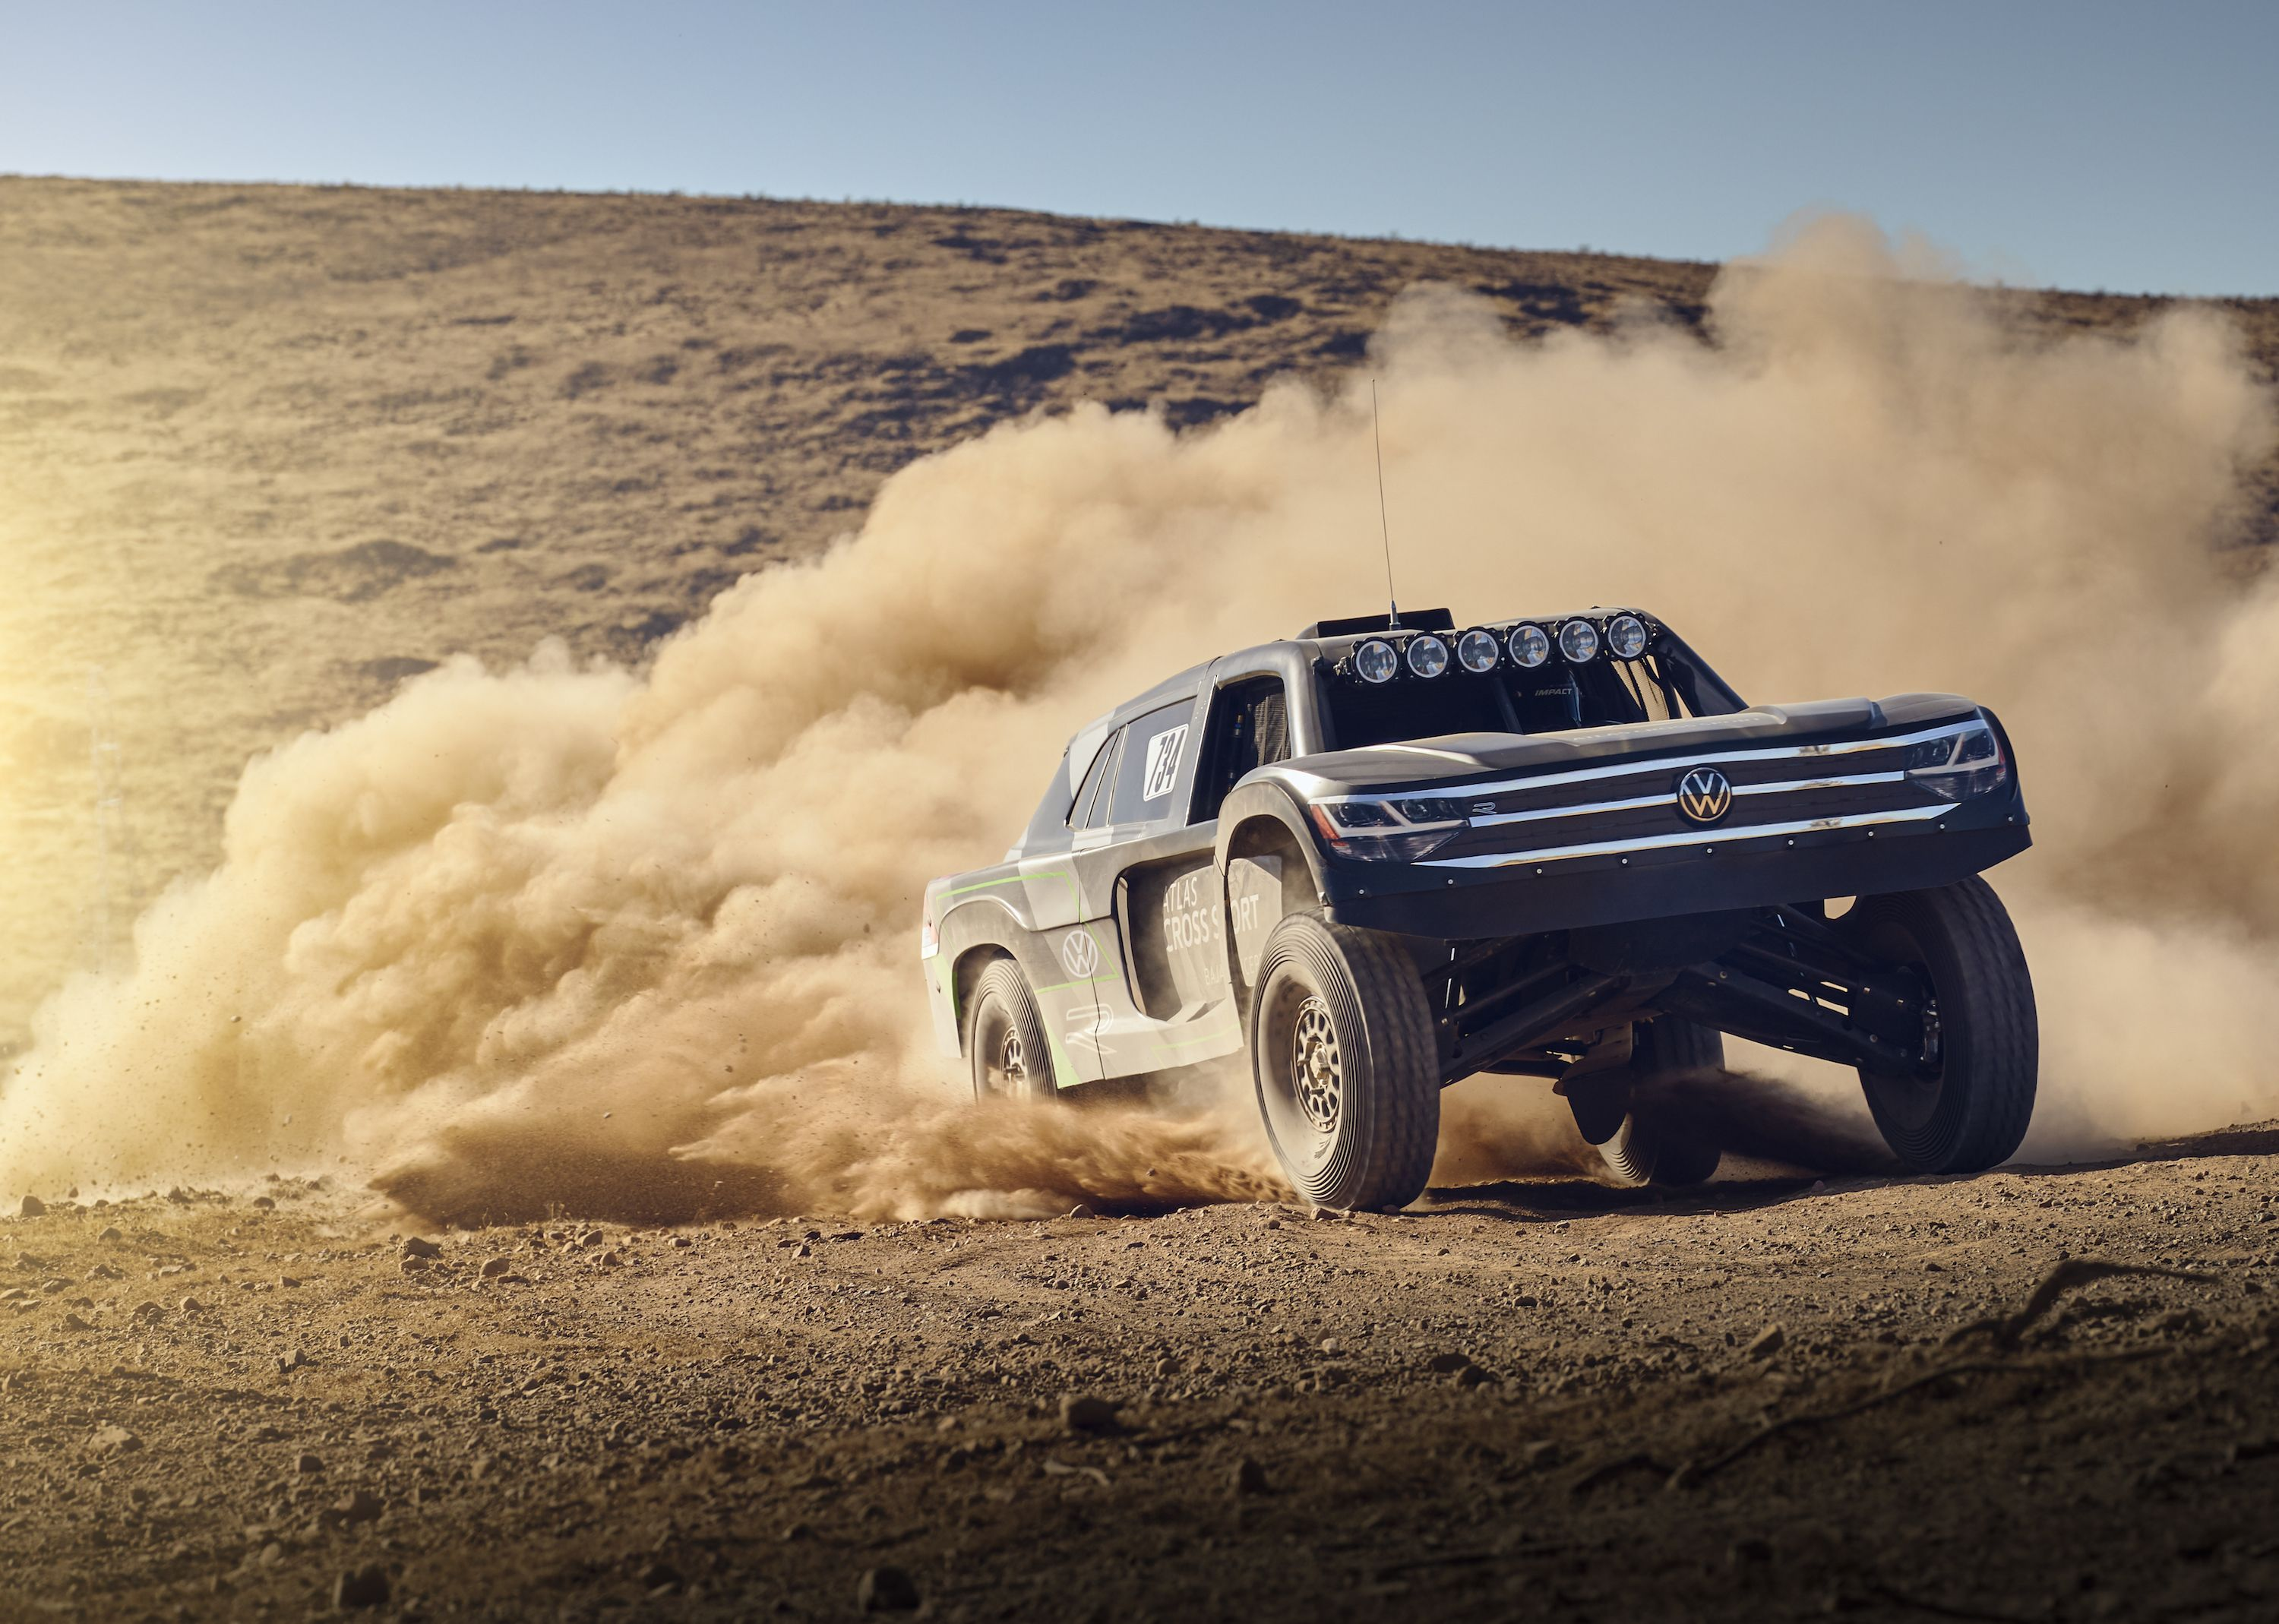 Volkswagen Is Taking This Monstrous Off-Roader to the Baja 1000